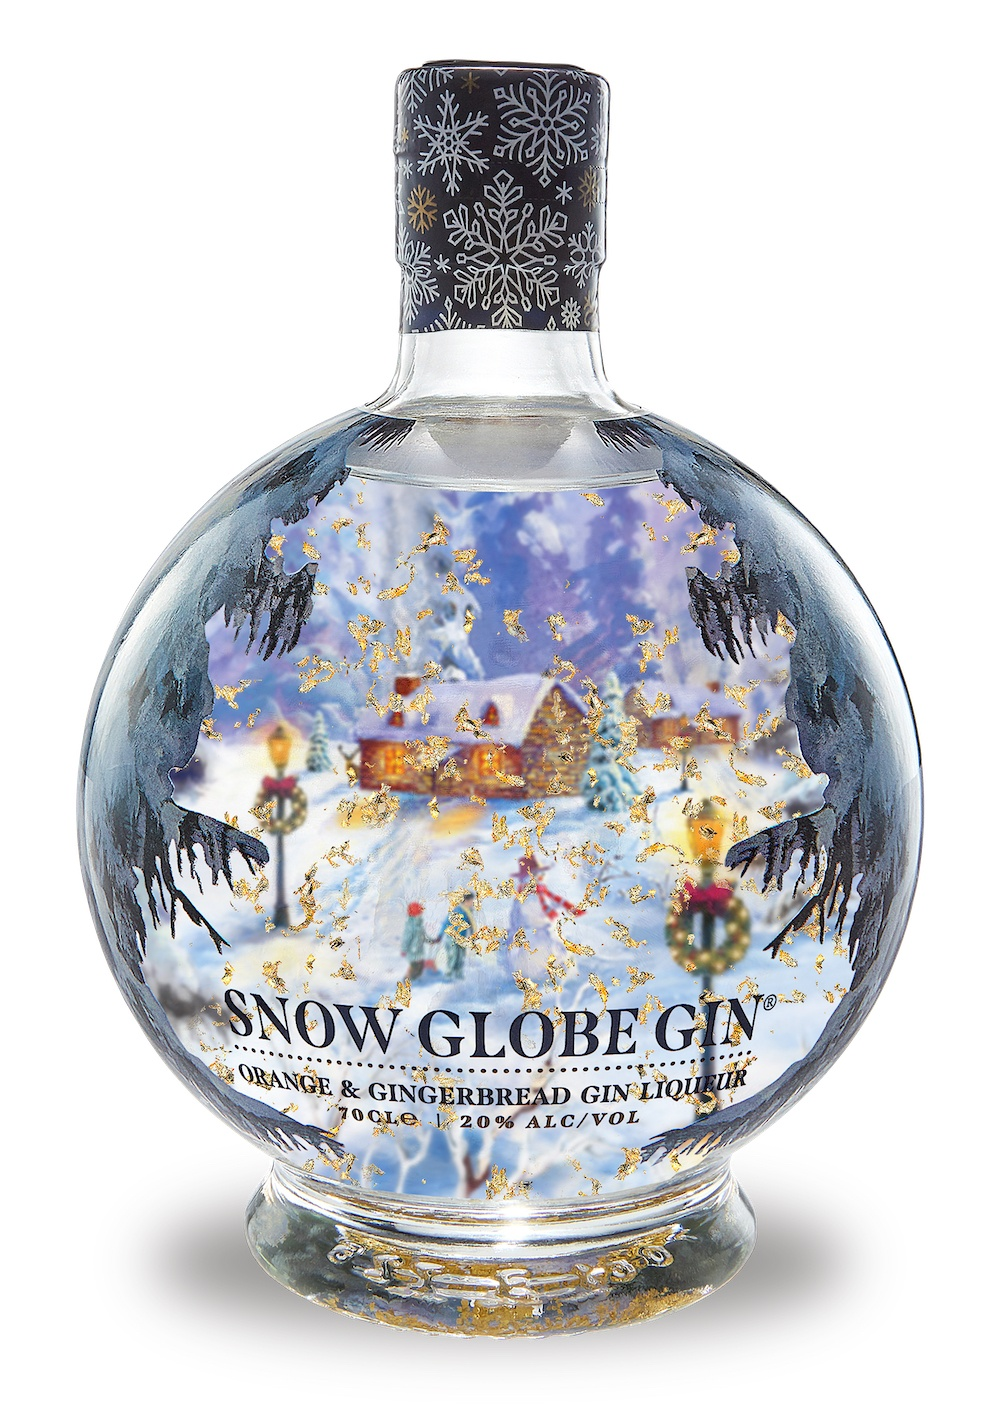 Snow Globe Gin bottle